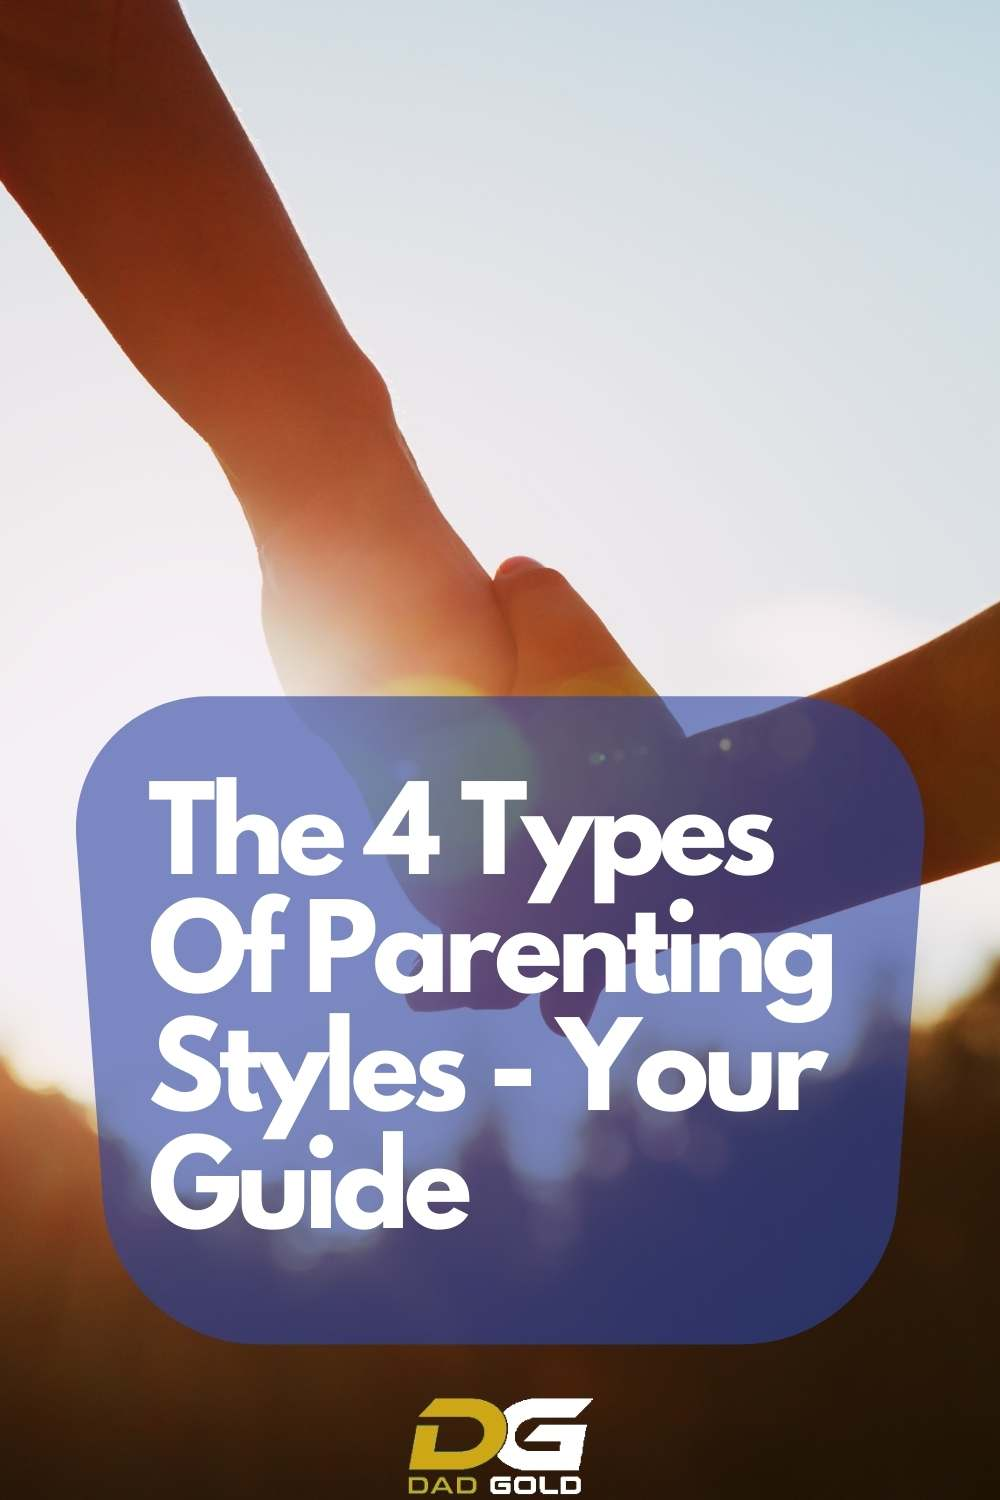 The 4 Types Of Parenting Styles - Your Guide